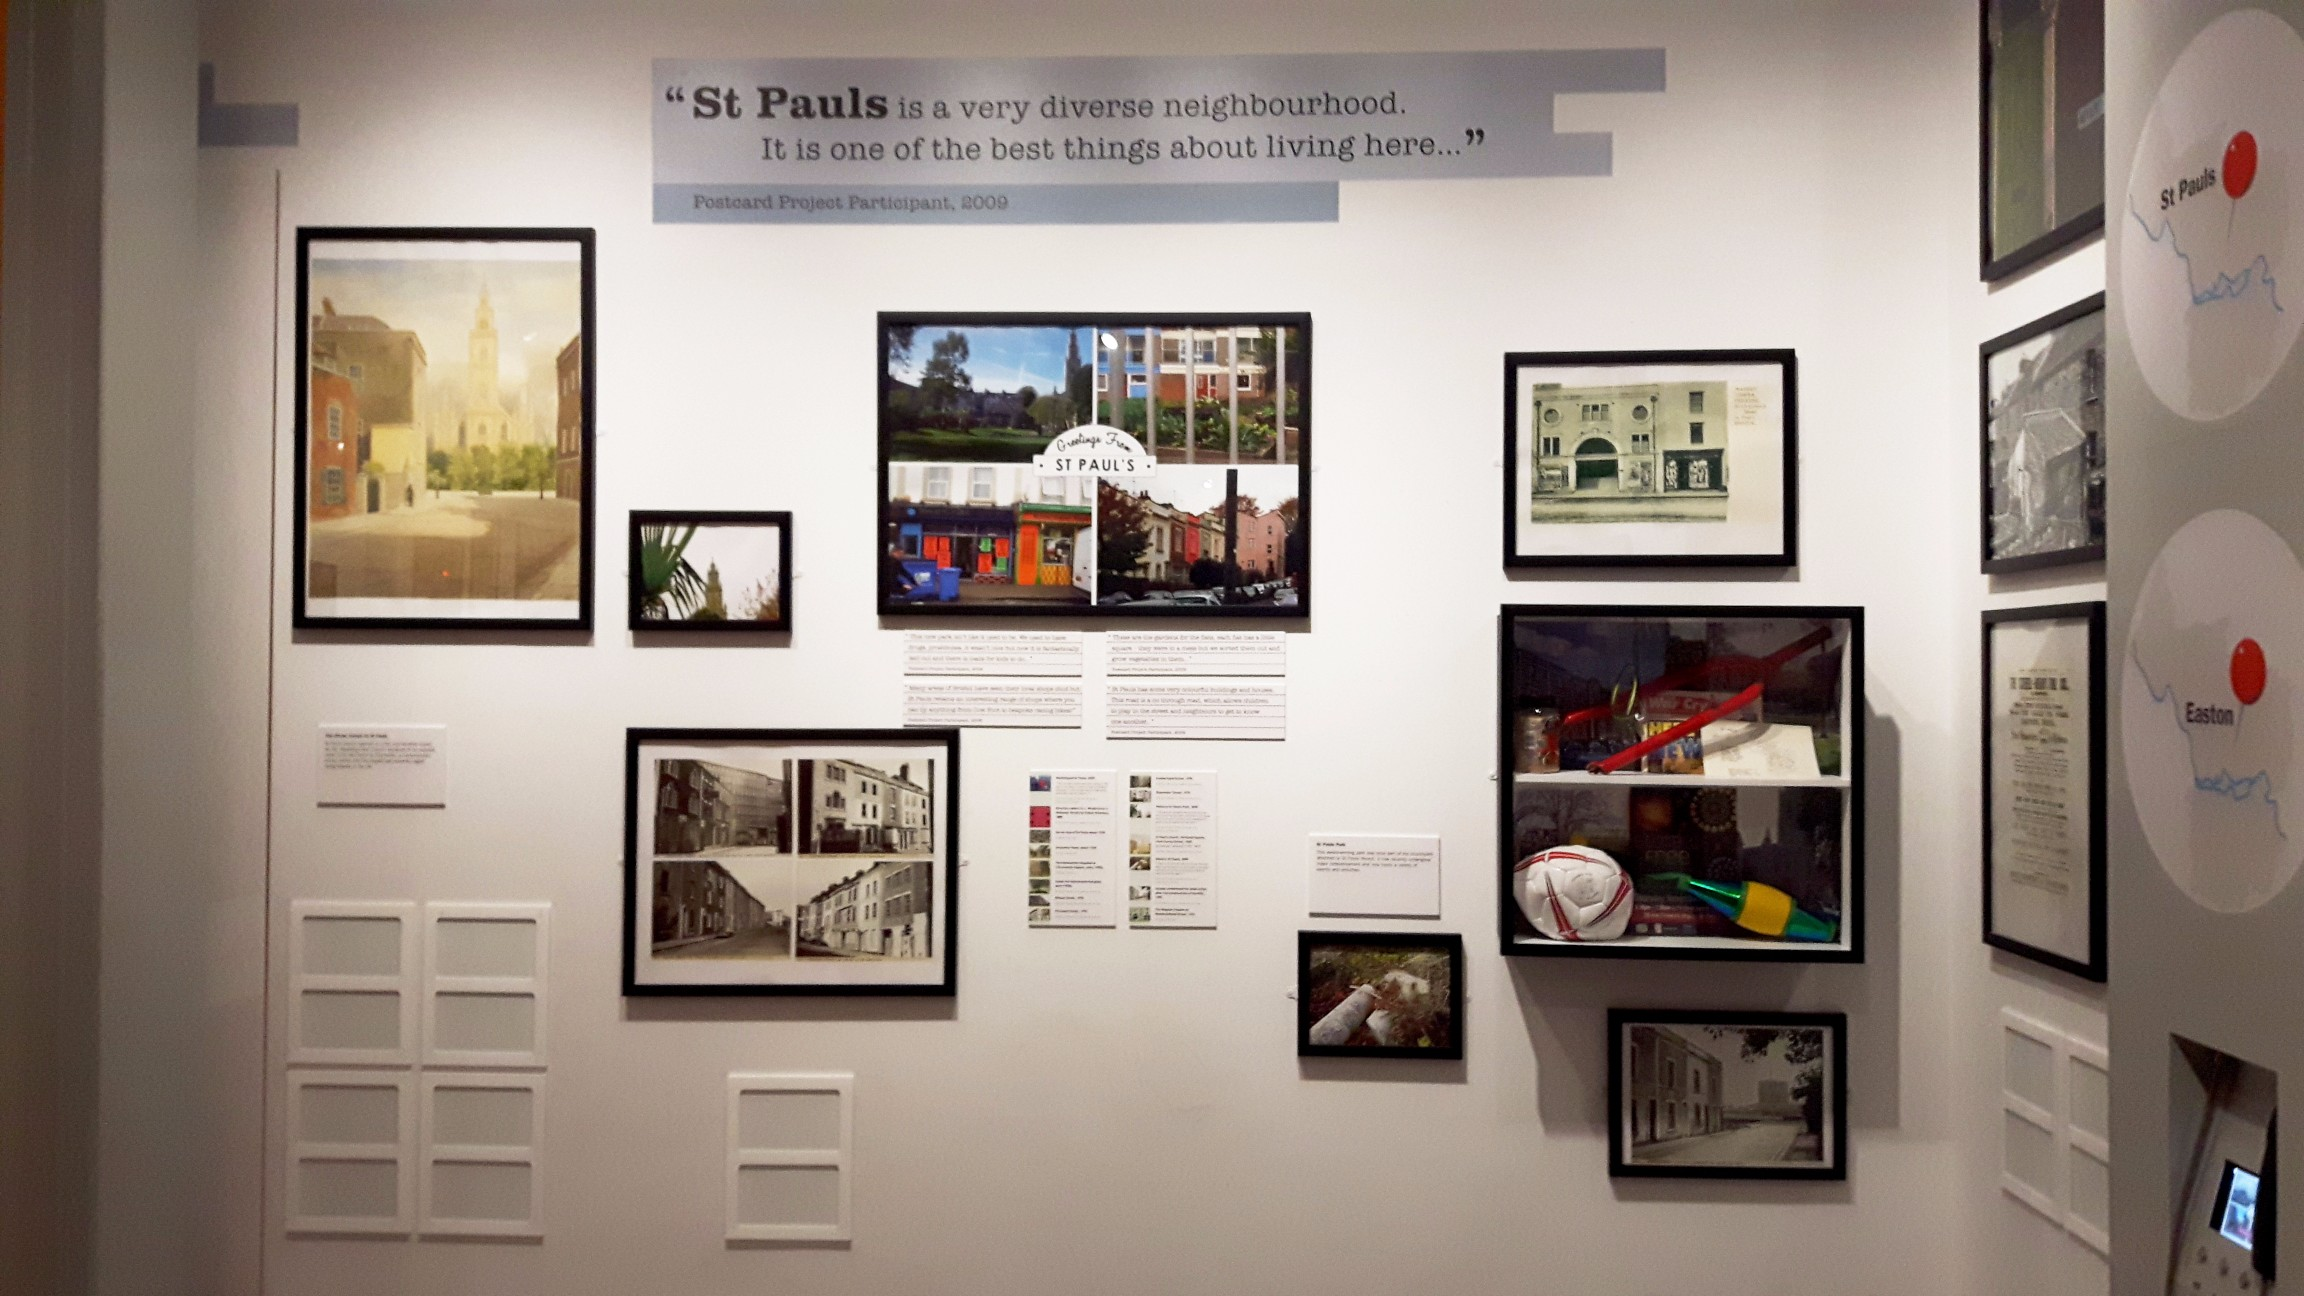 Photo of St. Paul's display in M Shed's Place Gallery, showing images and text about community life.